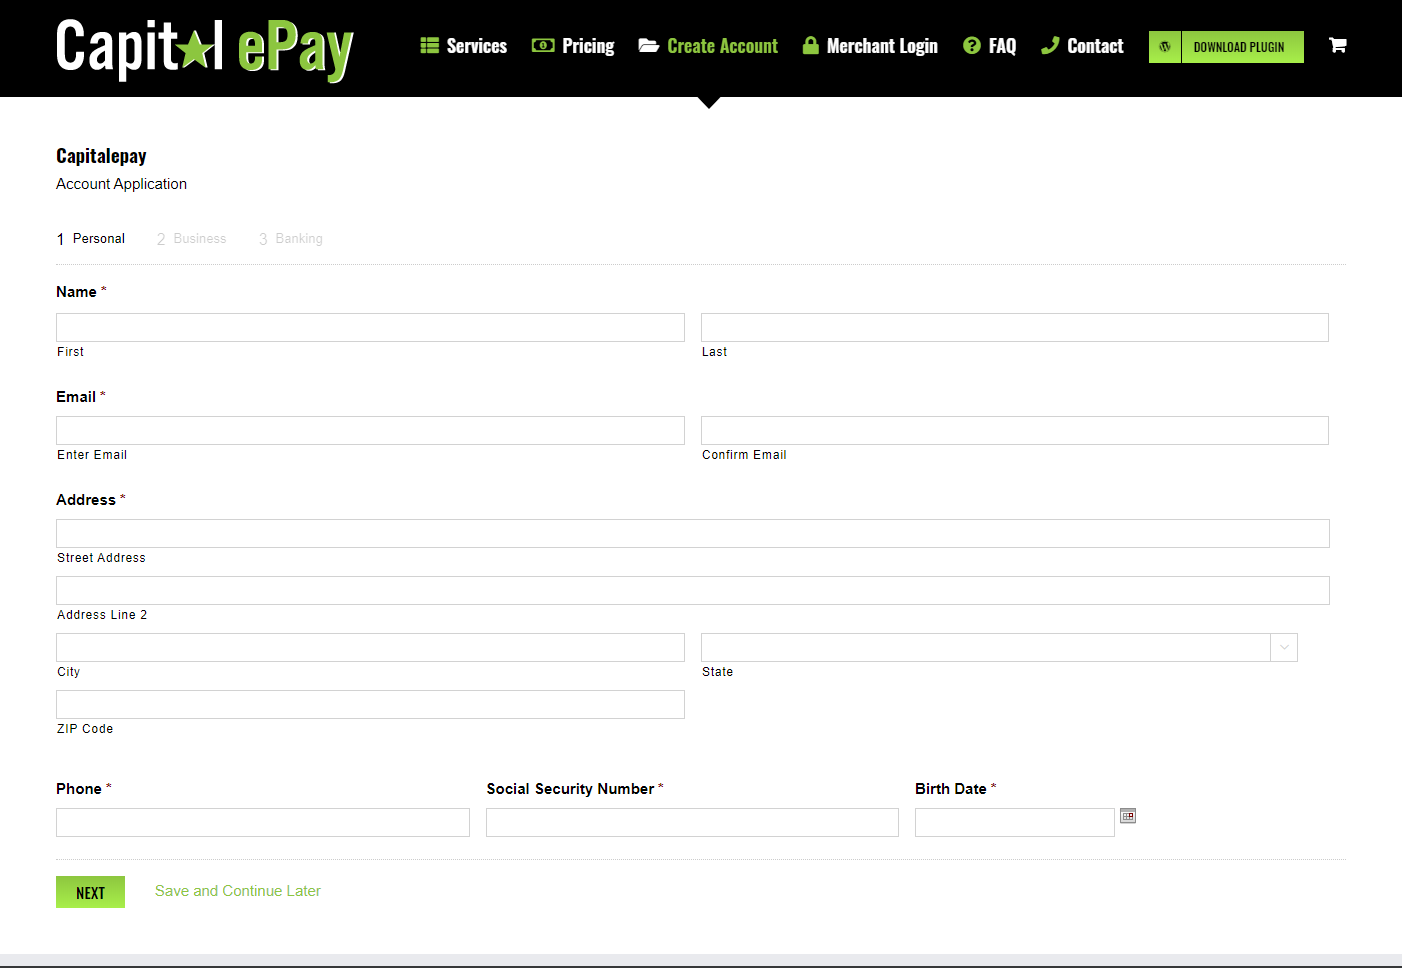 Capital ePay WordPress Credit Card Merchant Account Applicaltion